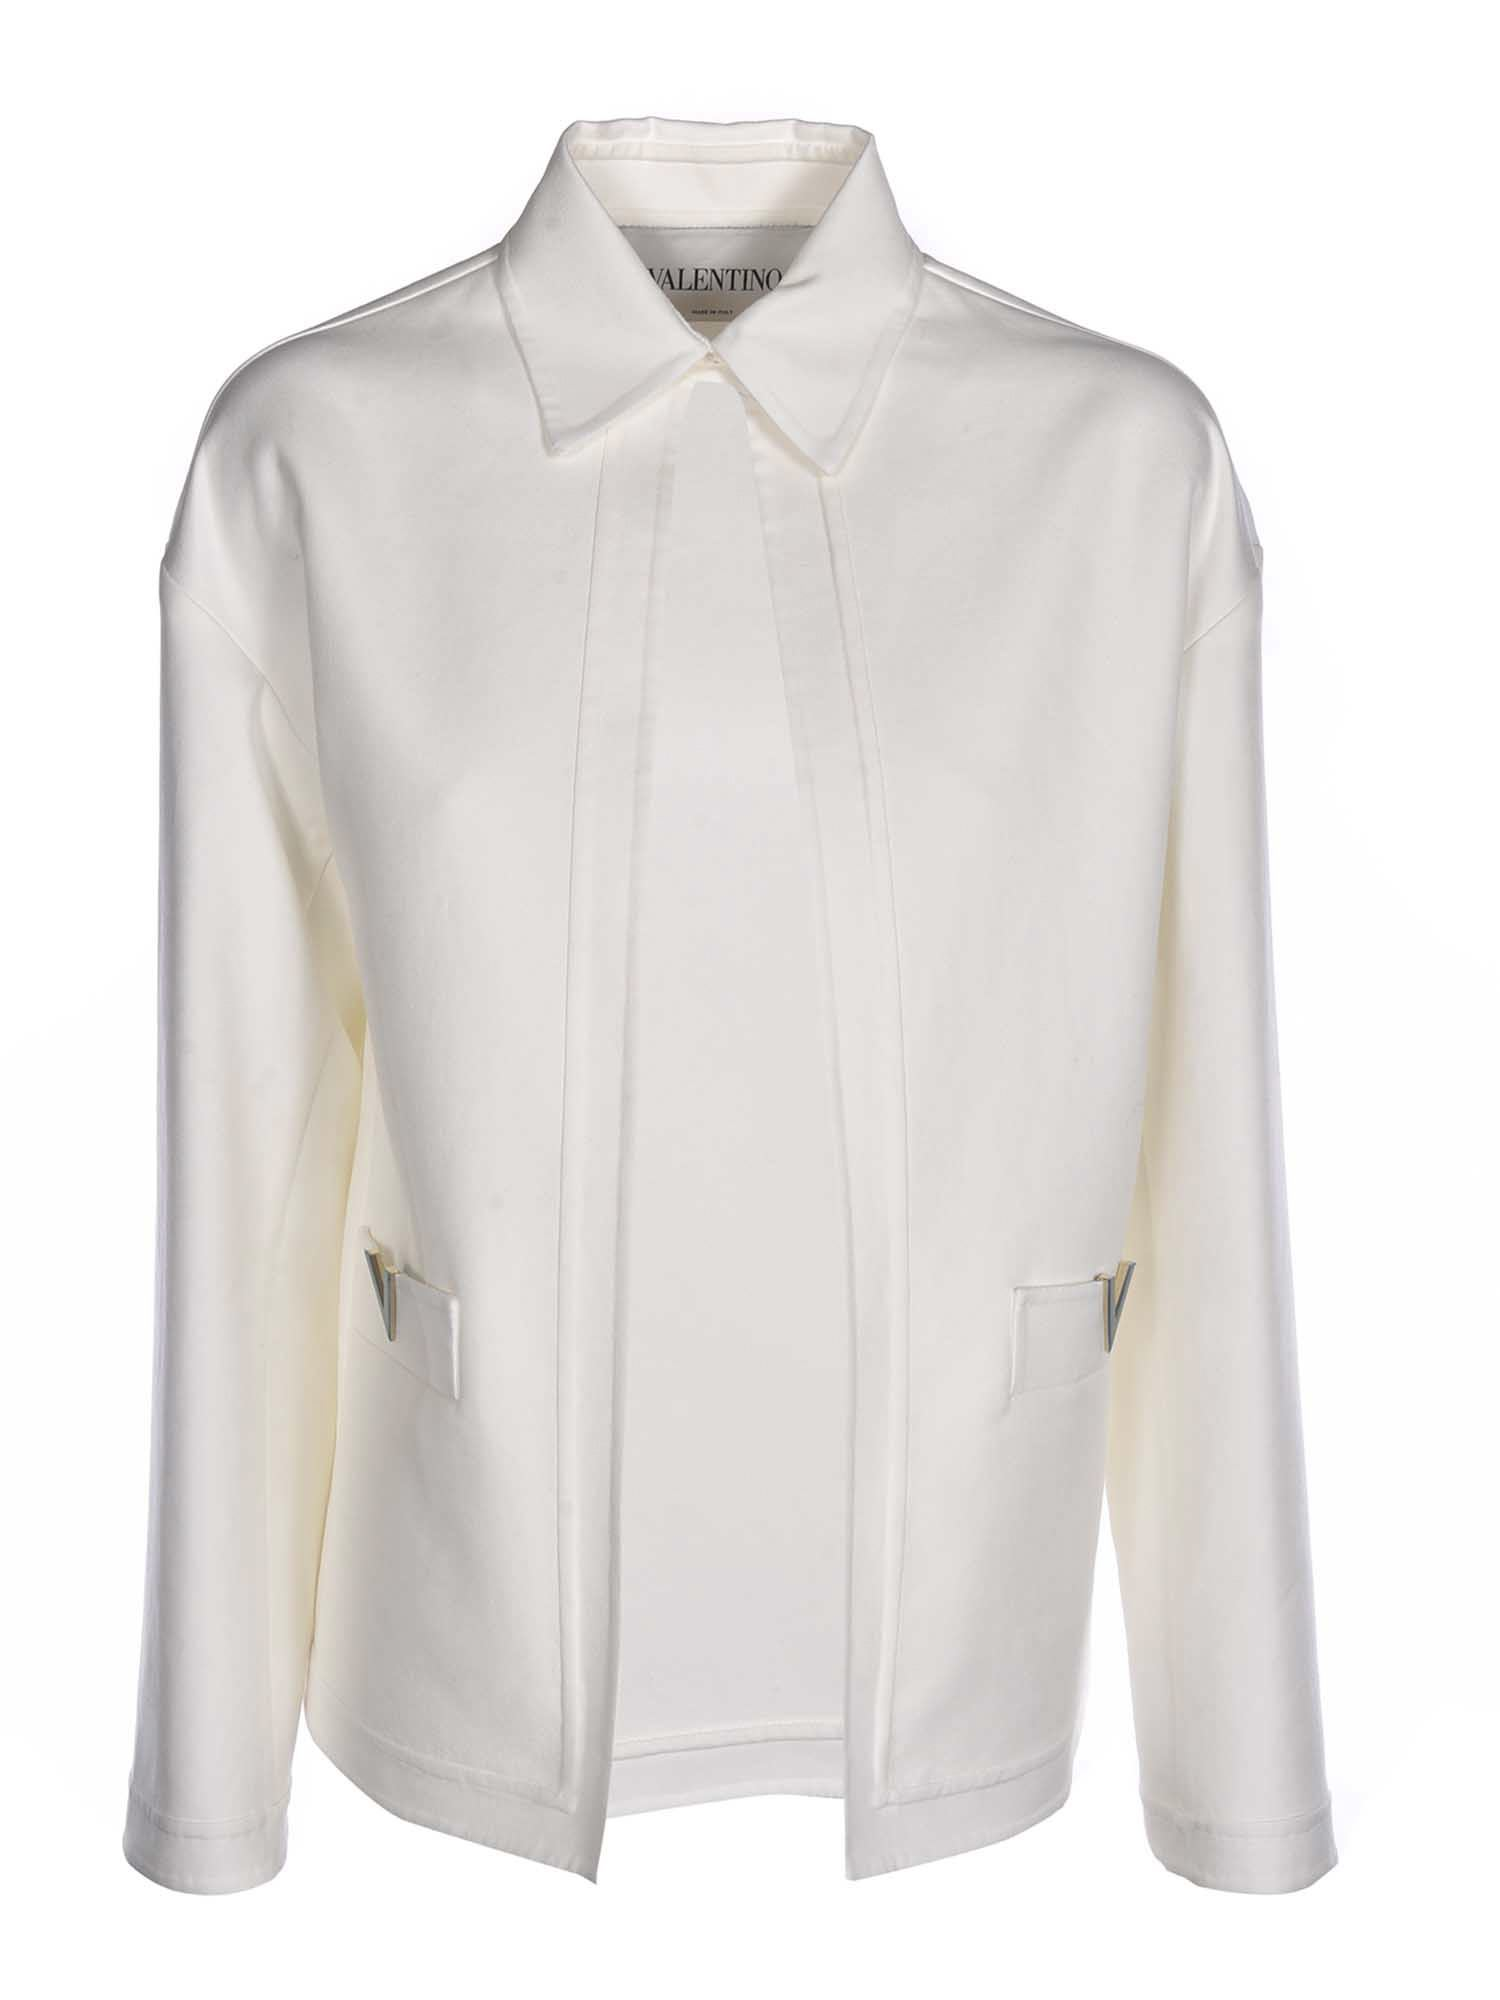 Valentino COTTON JACKET IN WHITE